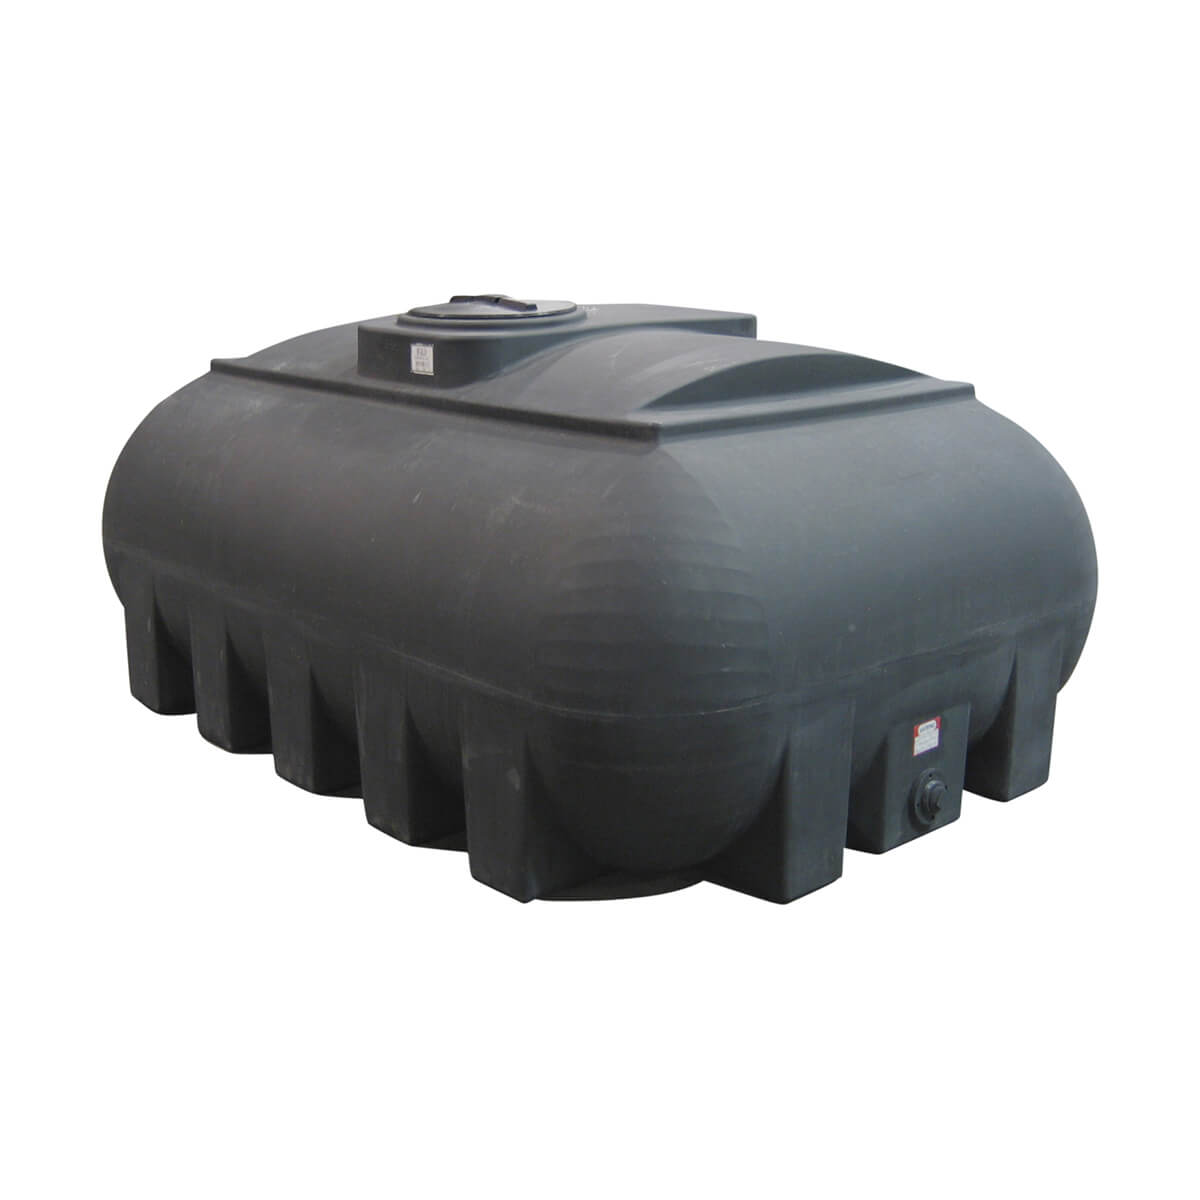 950 Gallon Hippo Transport Tank - Black